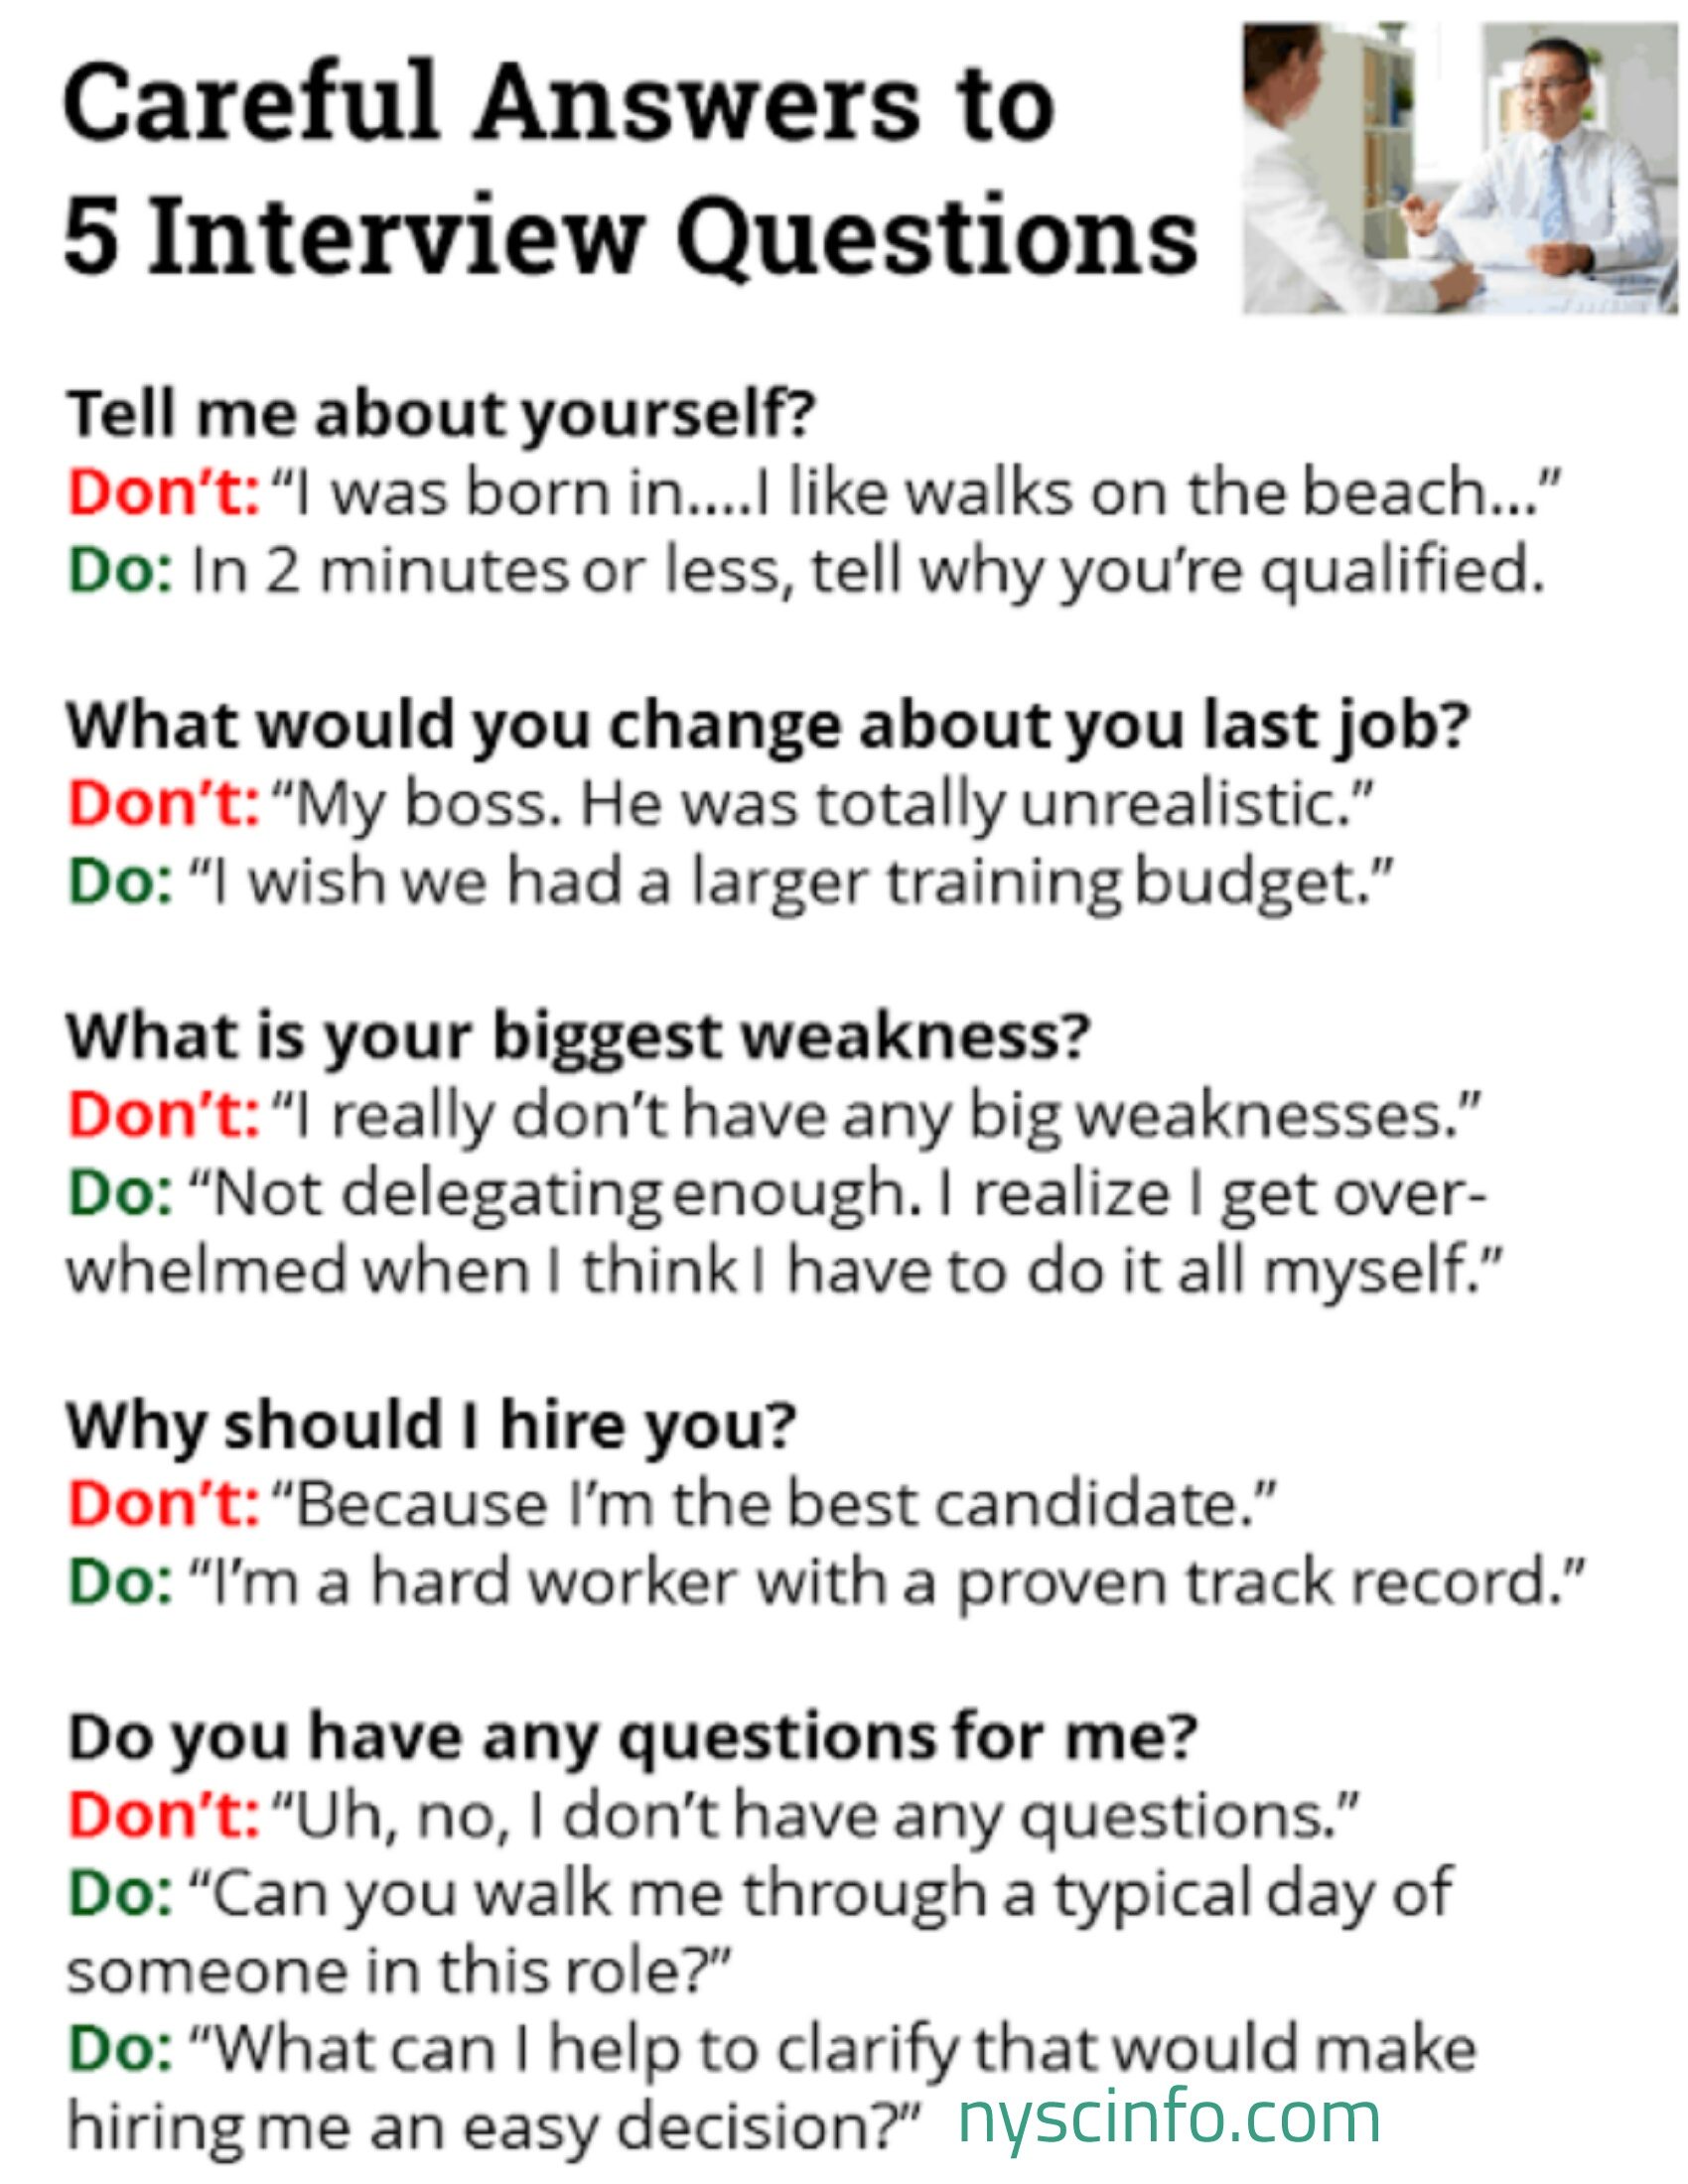 10 Tough Job Interview Questions and Answers - Nyscinfo